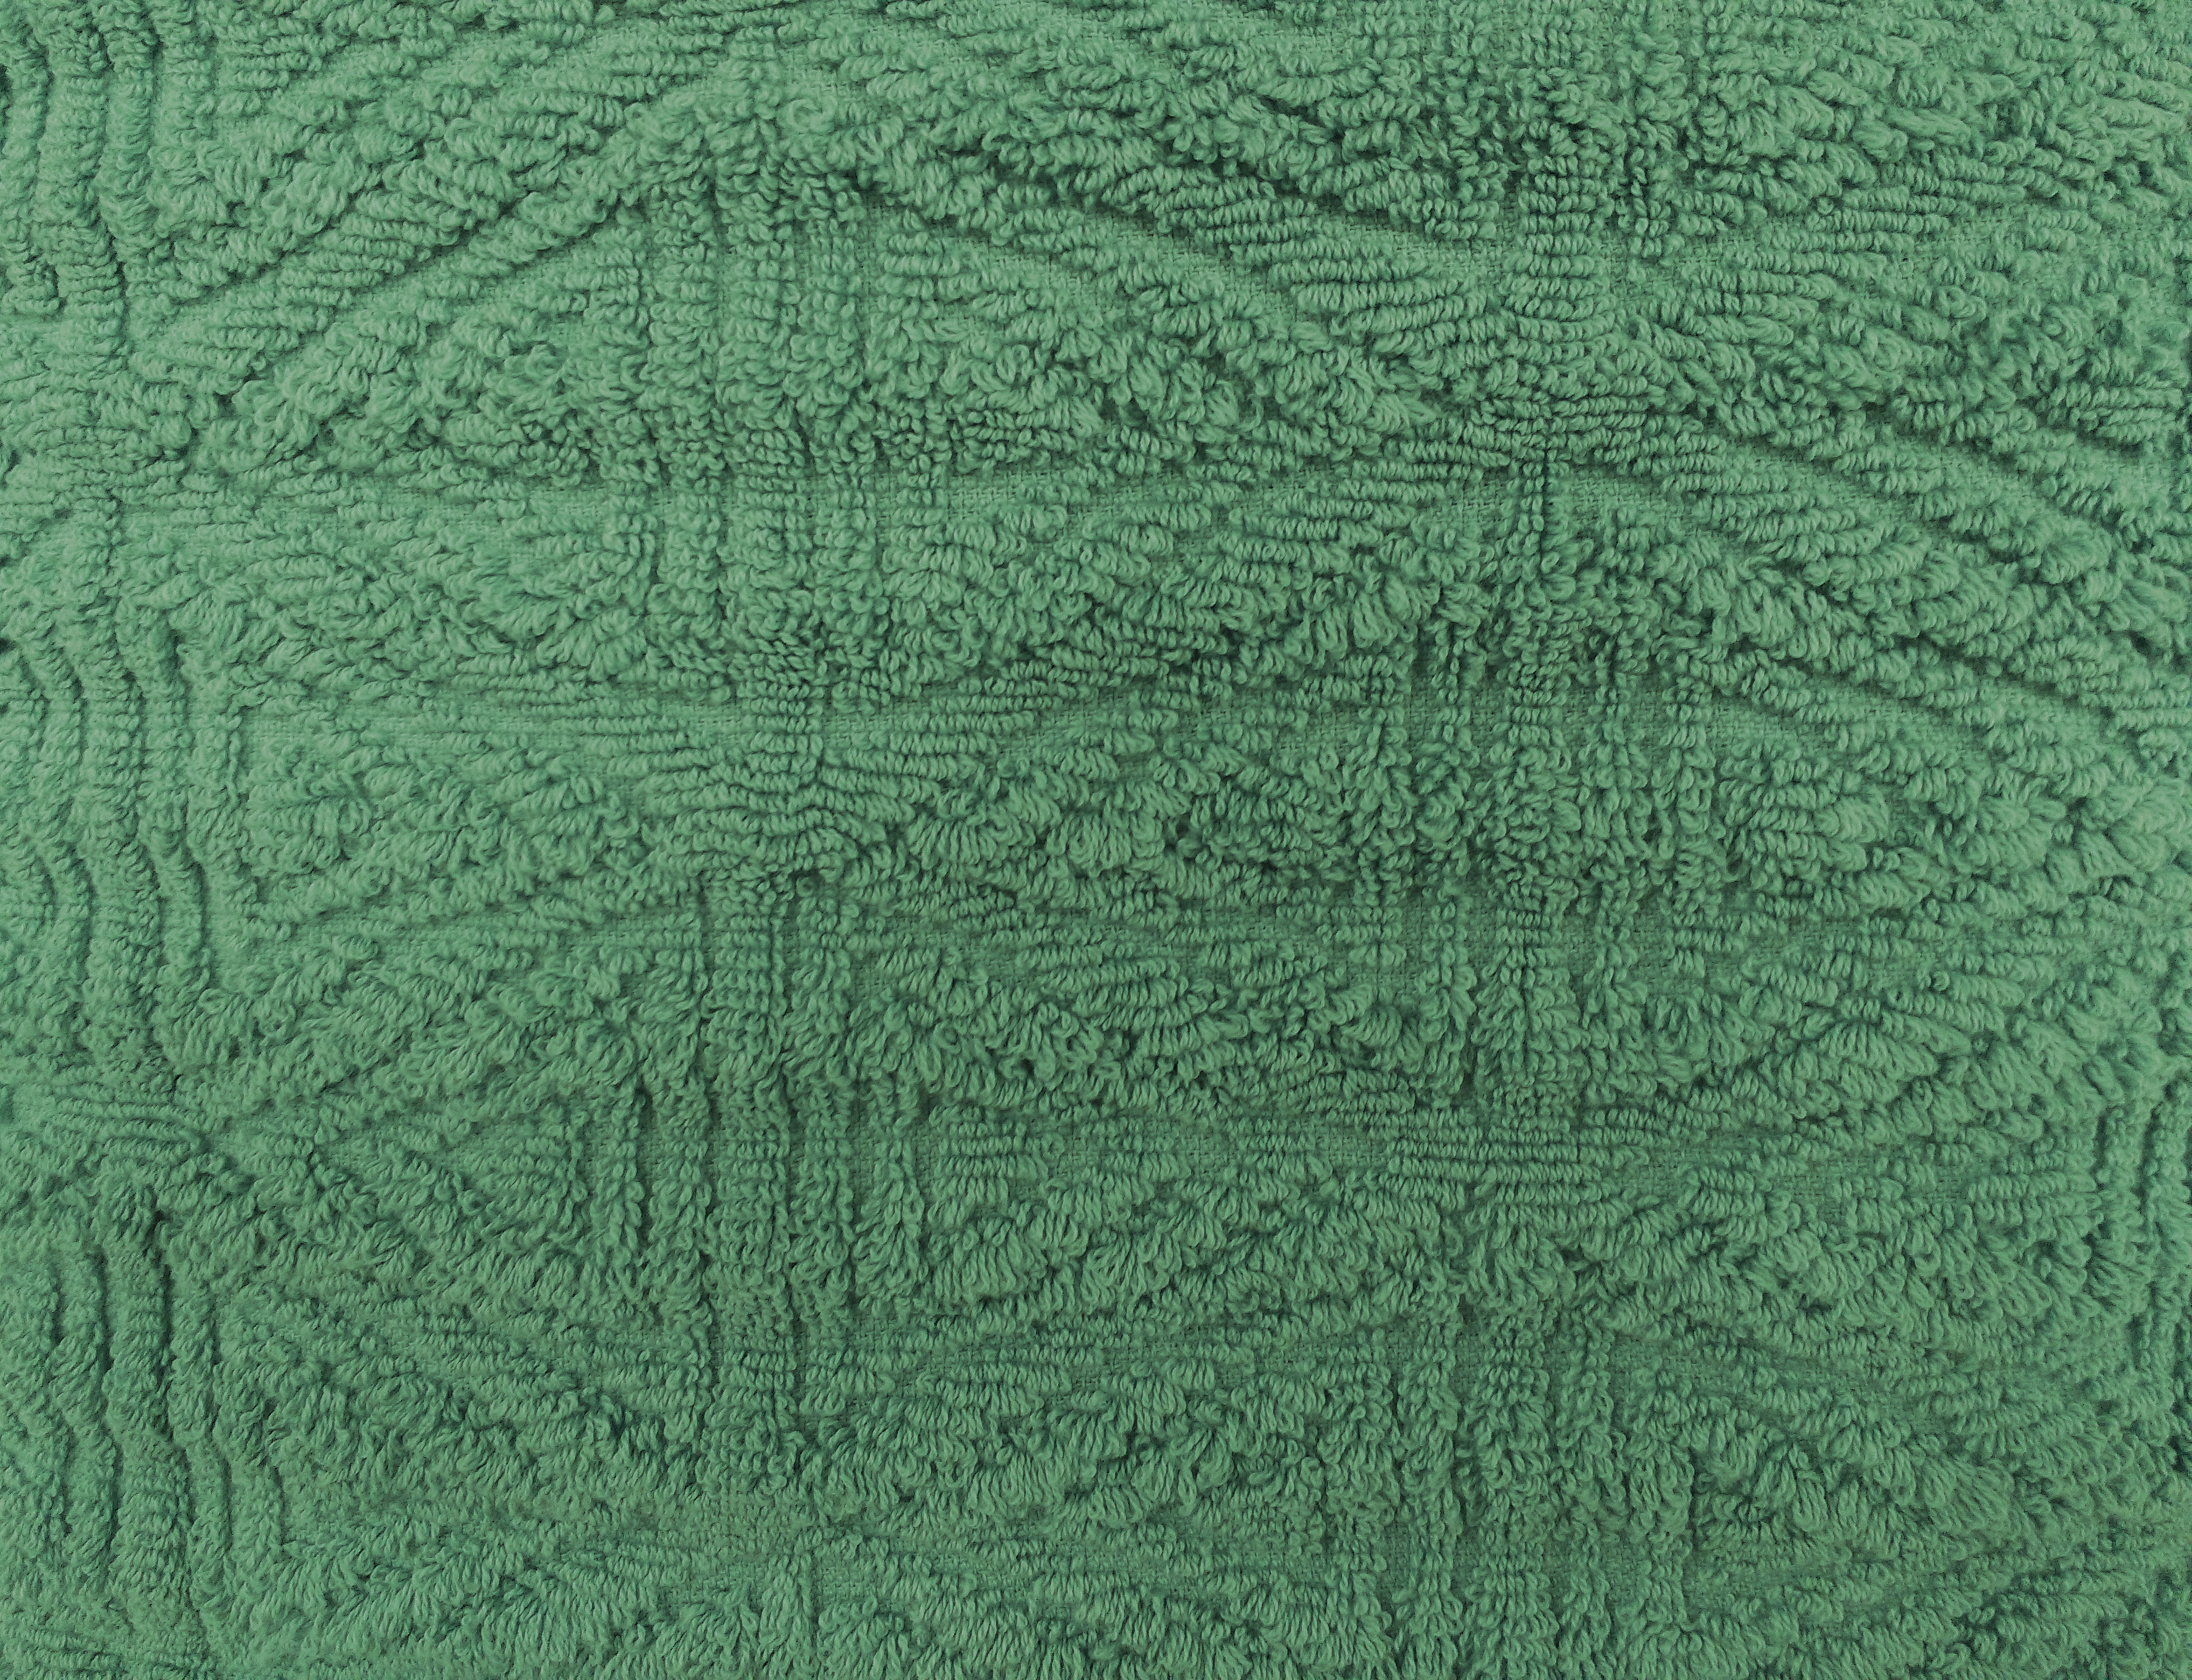 Green Textured Throw Rug Close Up Picture Free